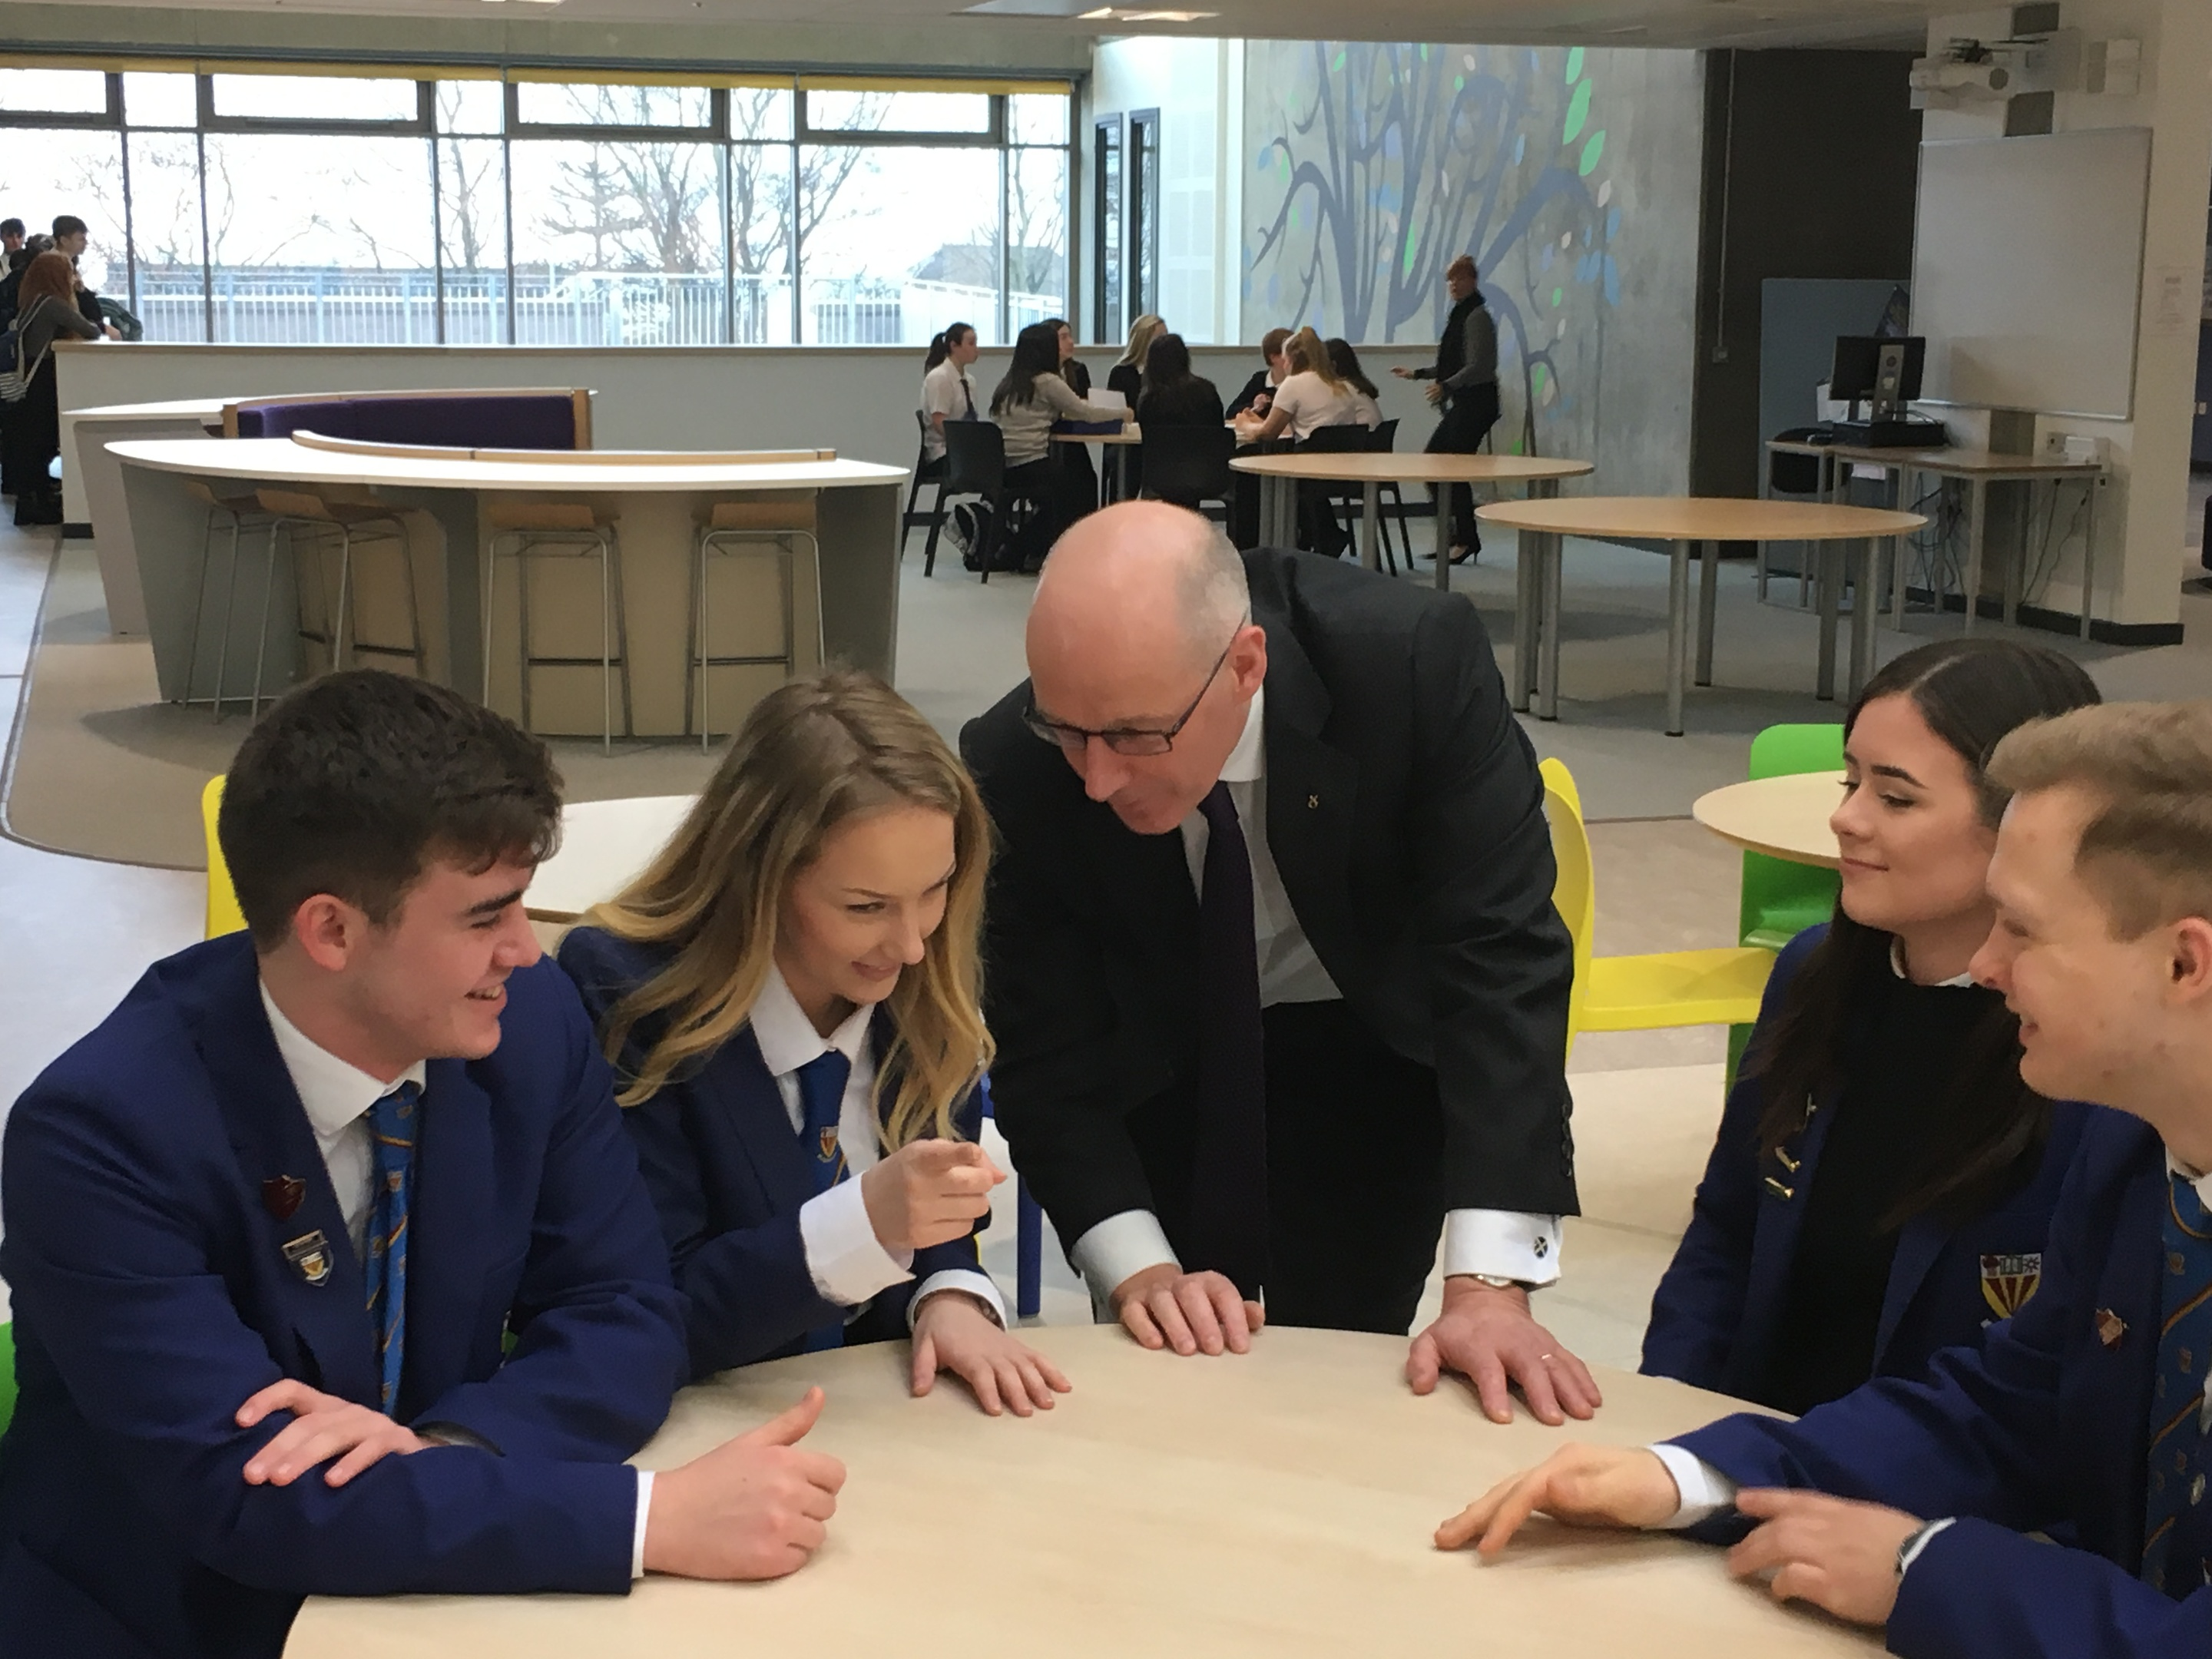 John Swinney in discussion with Brechin High School pupils